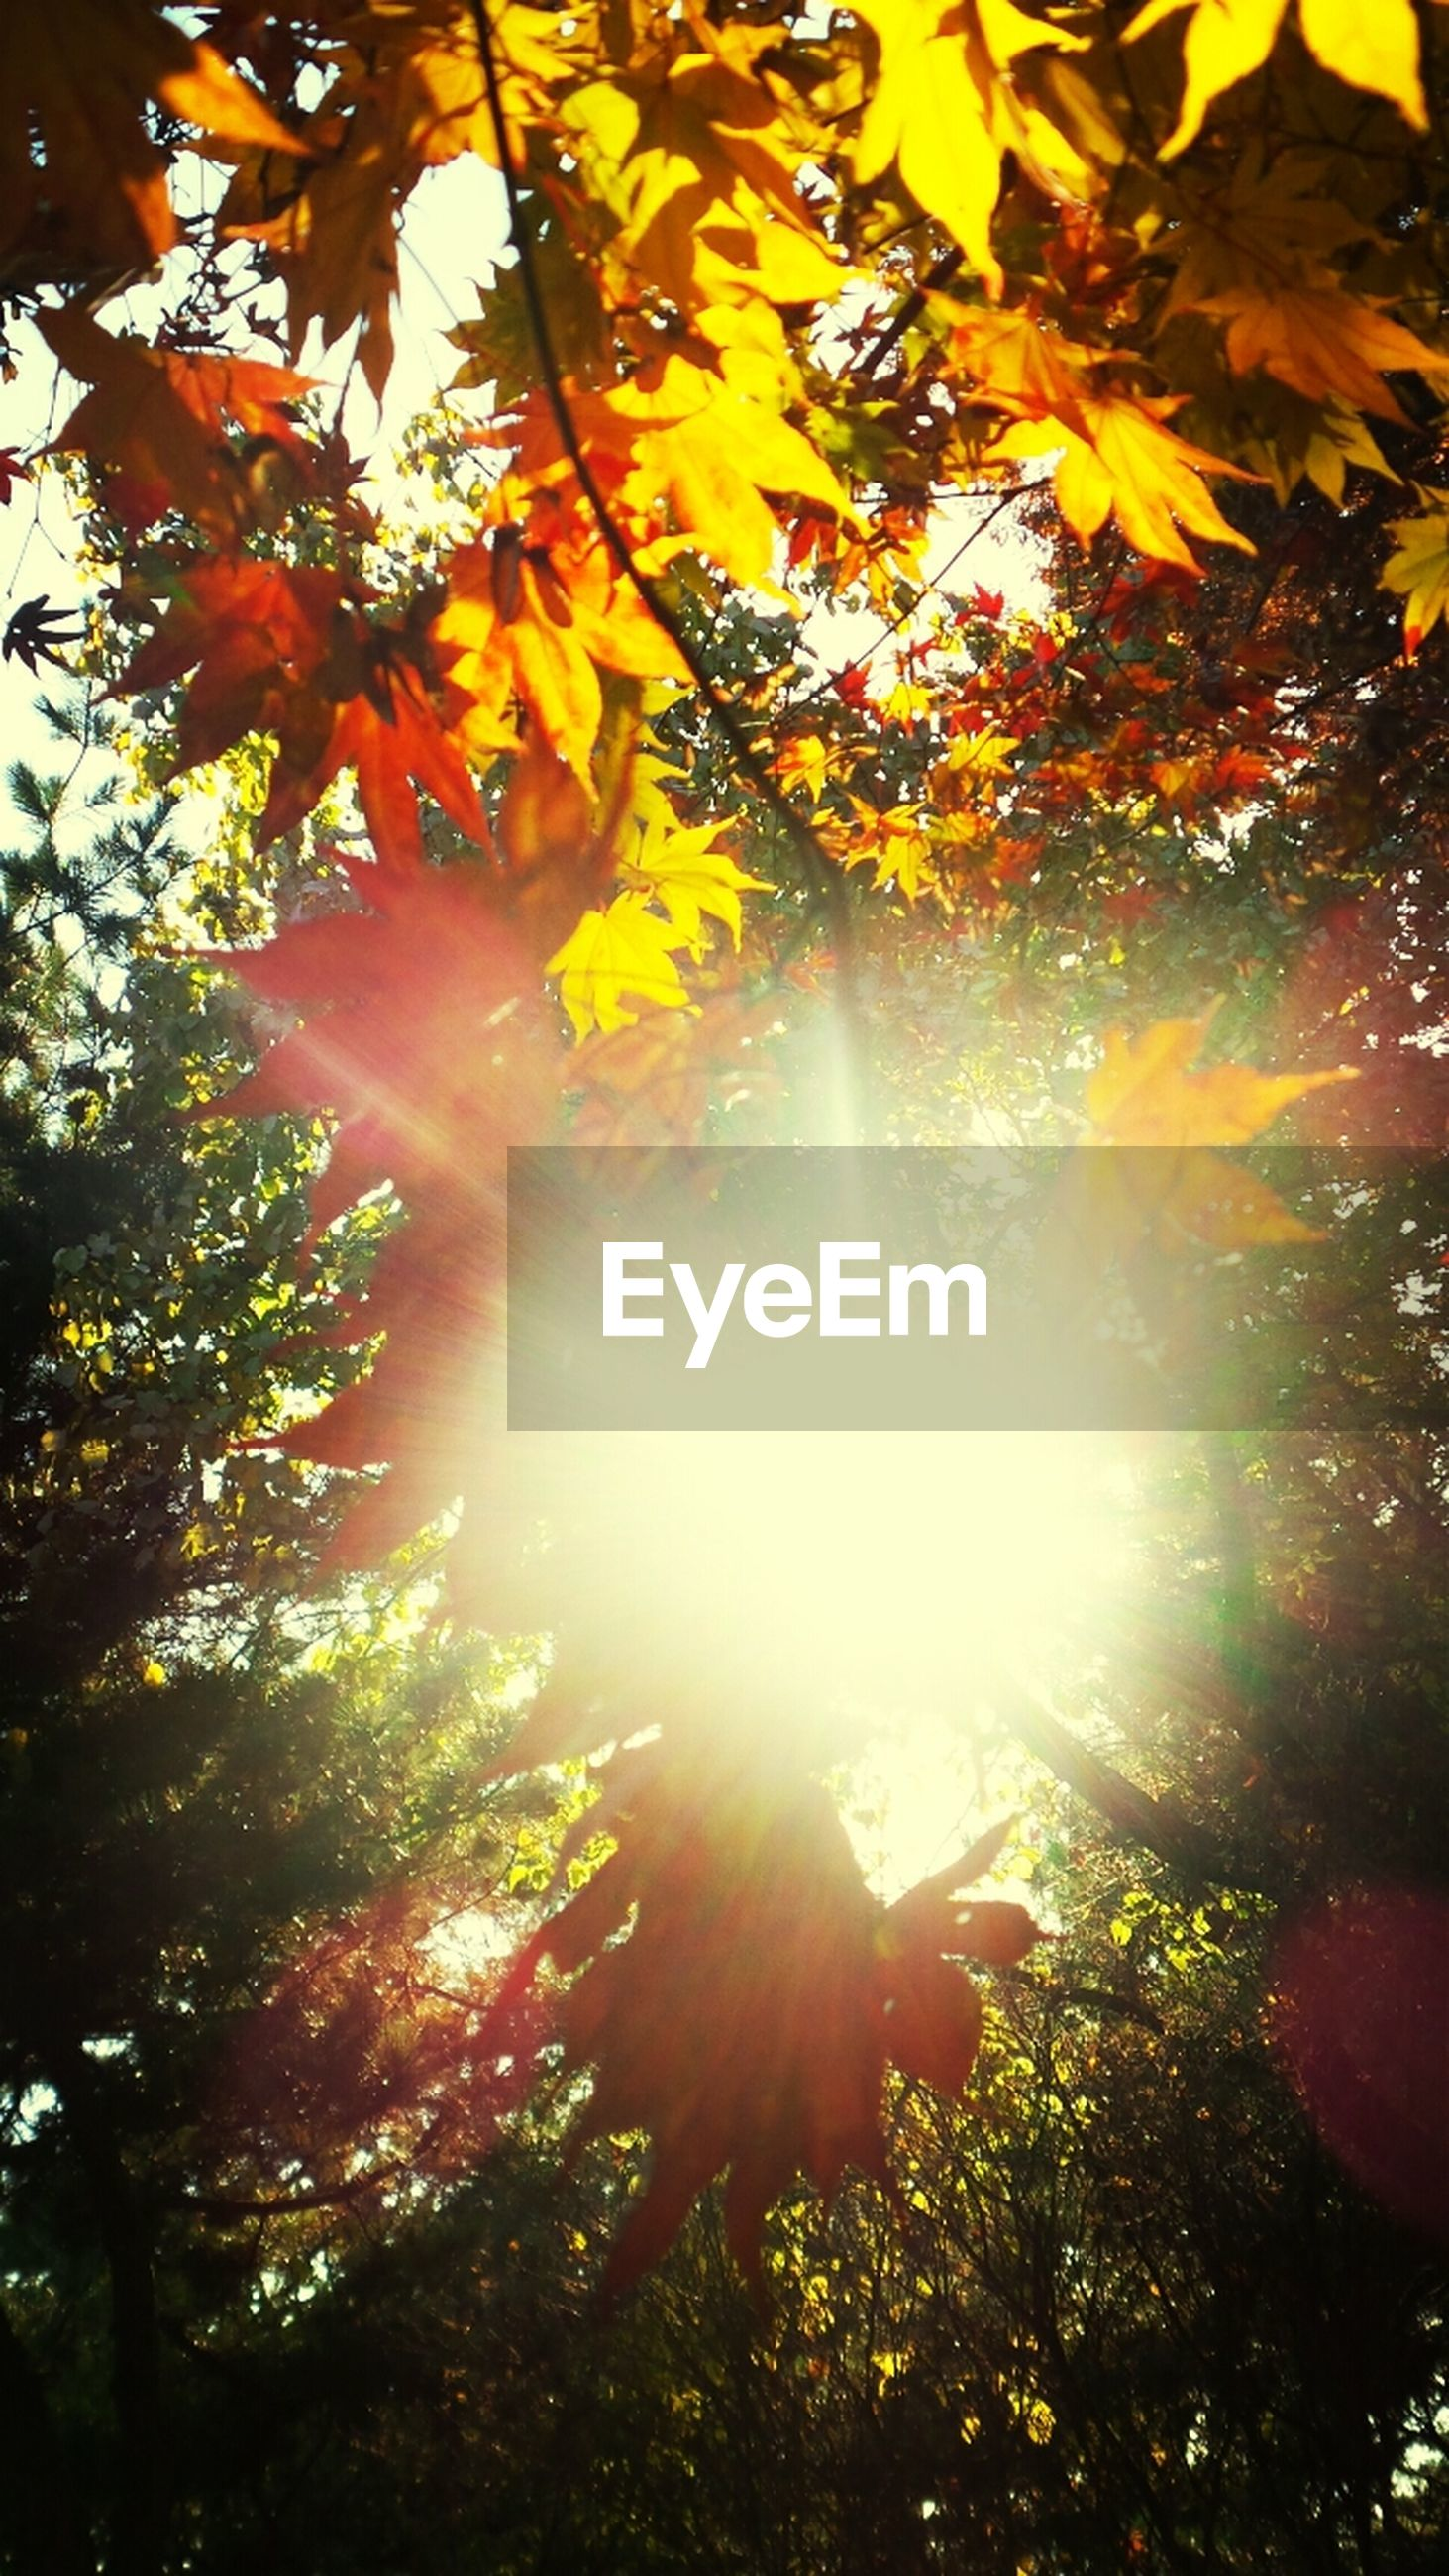 tree, sun, sunbeam, low angle view, sunlight, lens flare, growth, beauty in nature, nature, branch, leaf, back lit, tranquility, streaming, bright, sunny, scenics, autumn, day, outdoors